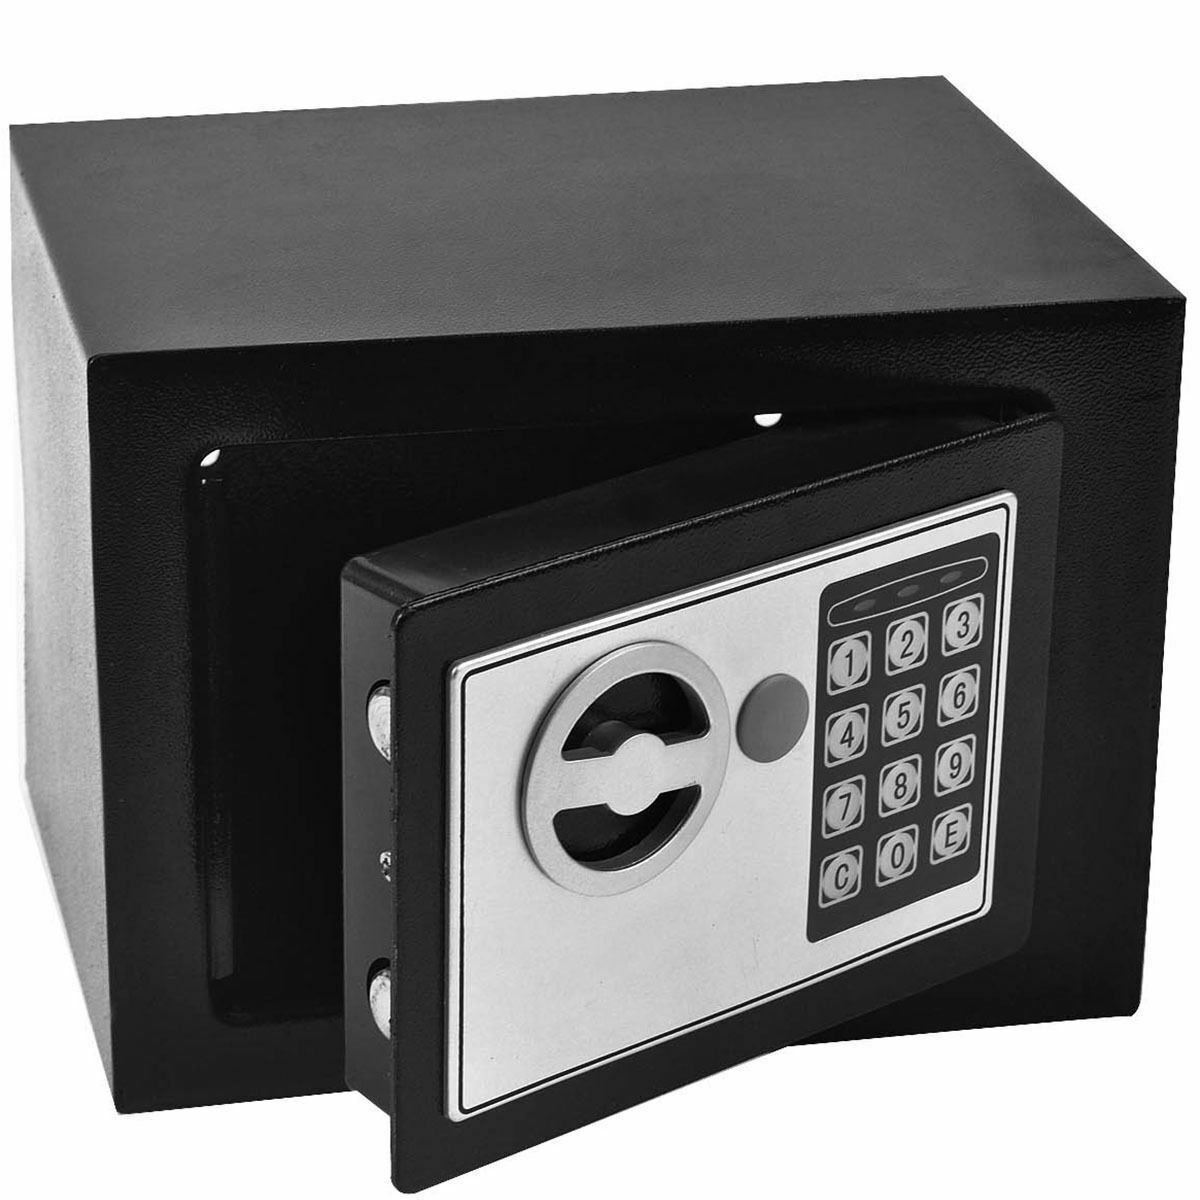 digital steel safe electronic security home office money cash safety box black. Black Bedroom Furniture Sets. Home Design Ideas